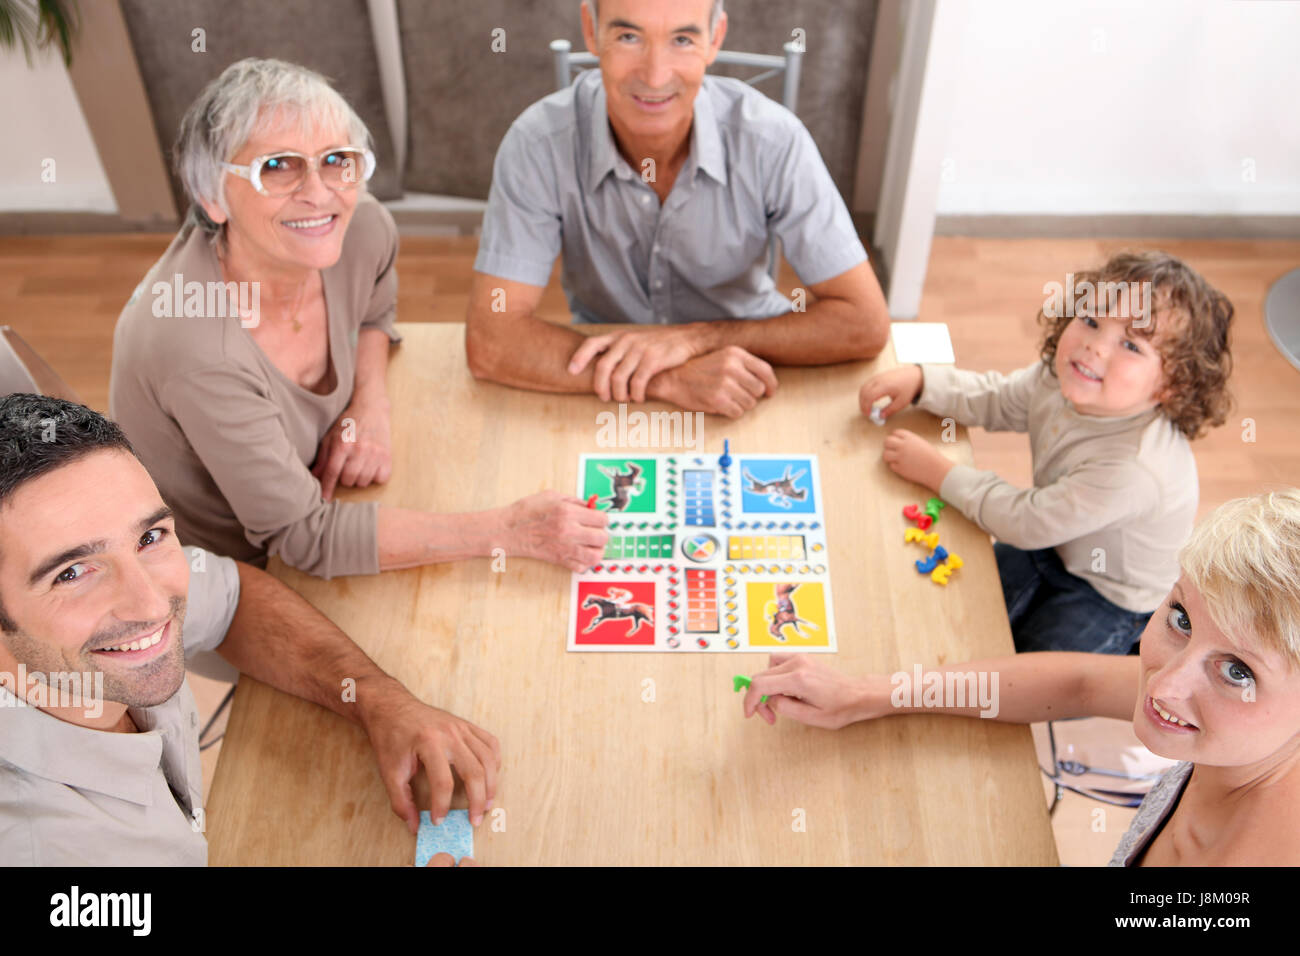 board, competition, bonding, boy, lad, male youngster, activity, child, - Stock Image